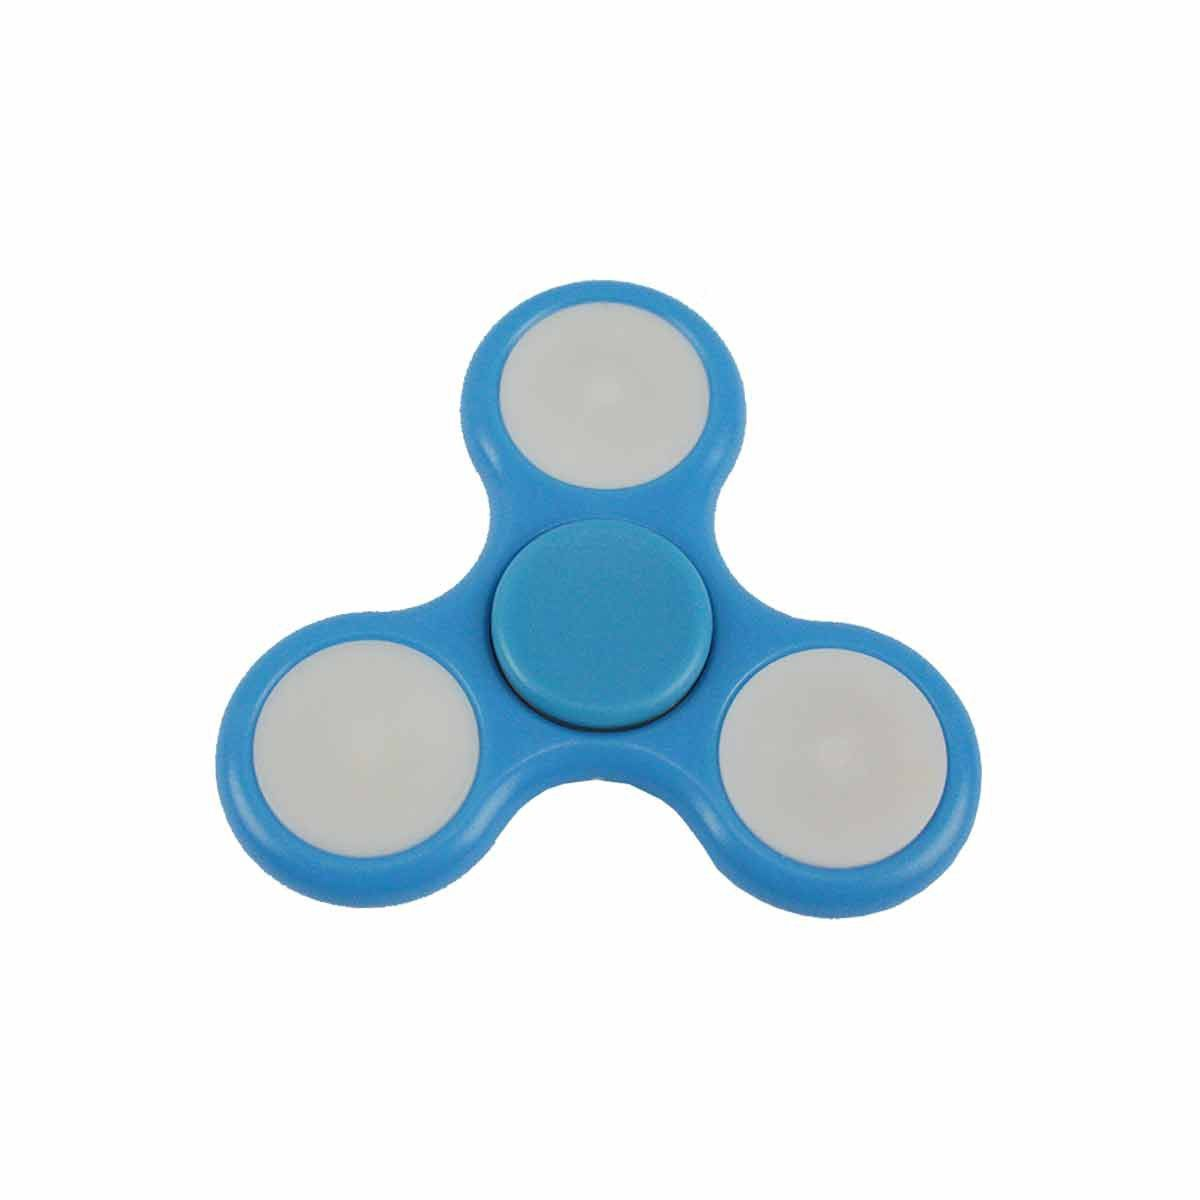 Fidget Hand Spinner Toy Azul Claro c/ LED - Fingertoy